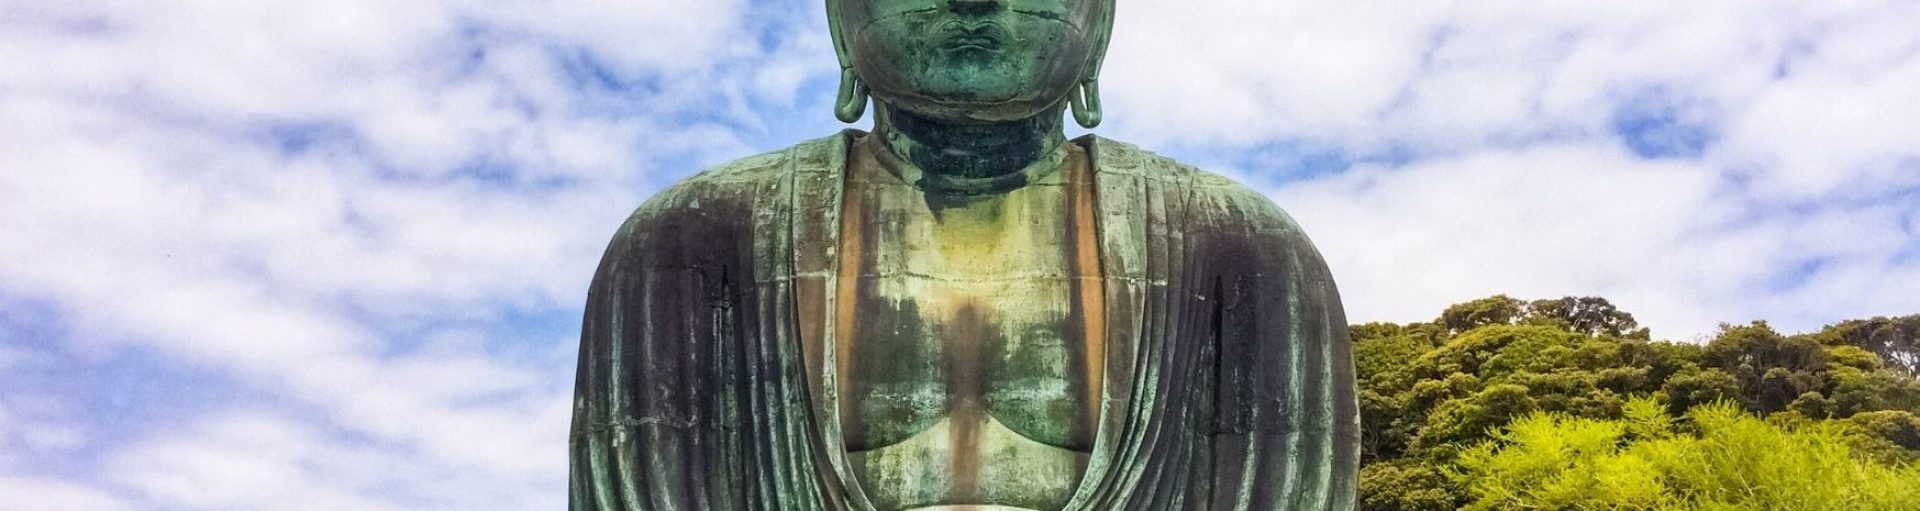 Visit Kamakura, a great day trip from Tokyo